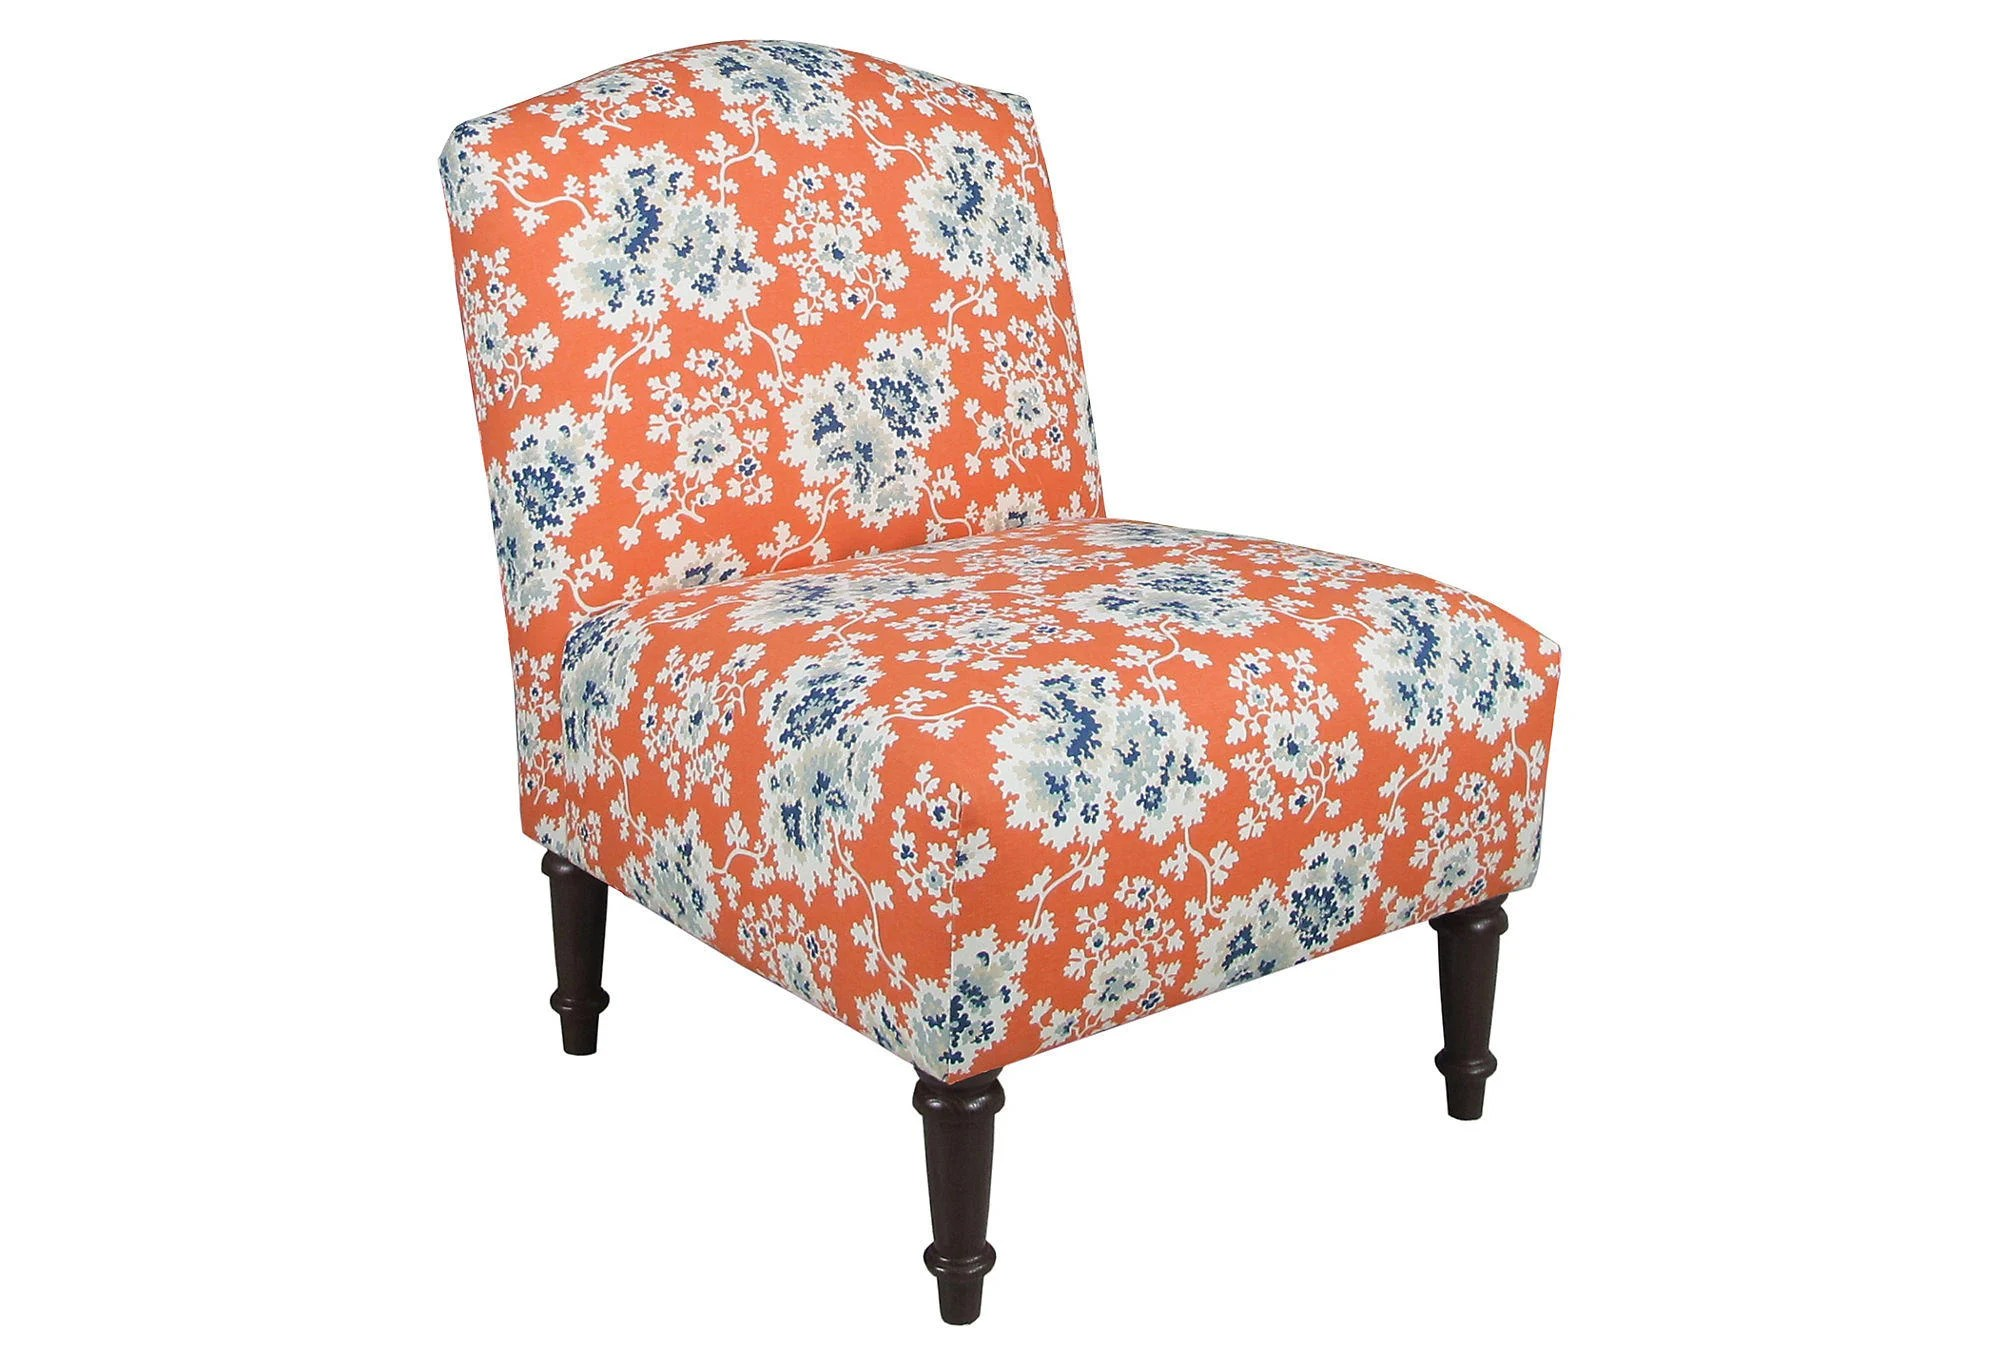 blue floral chair chairs for front porch clark slipper orange from one kings lane